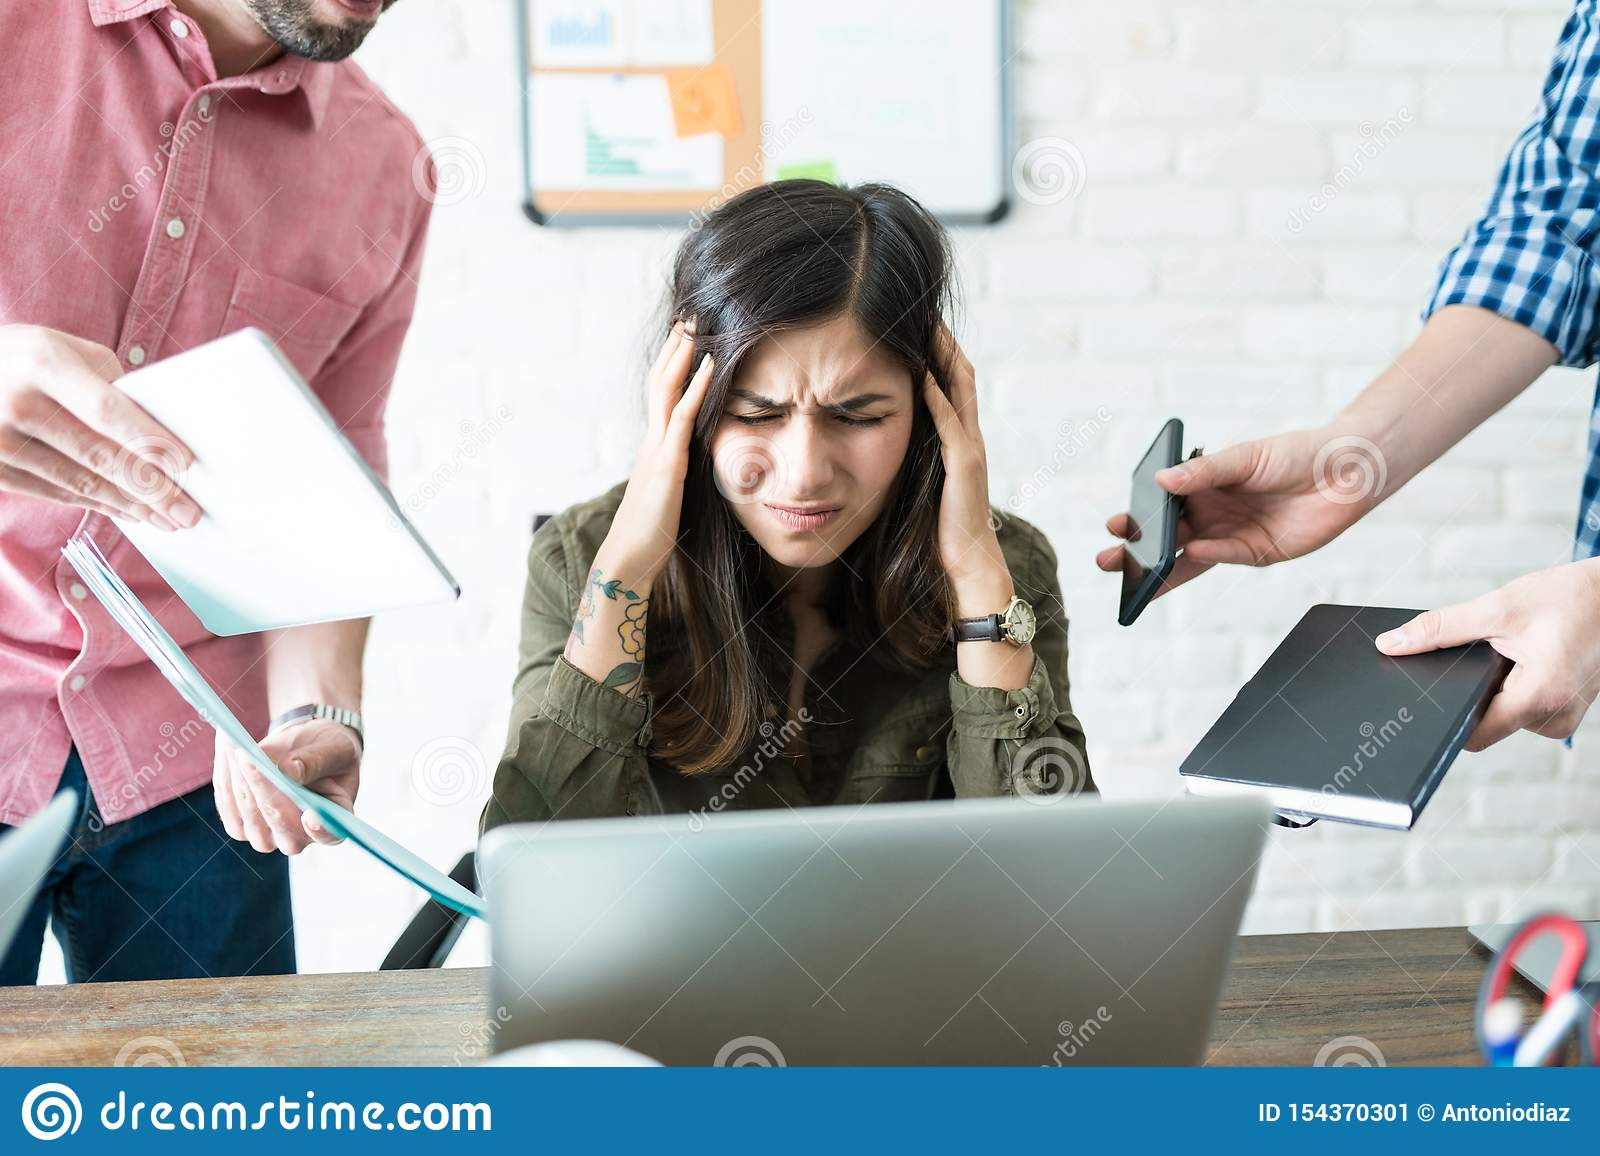 Professional Unable To Cope With Assigned Tasks Stock ...